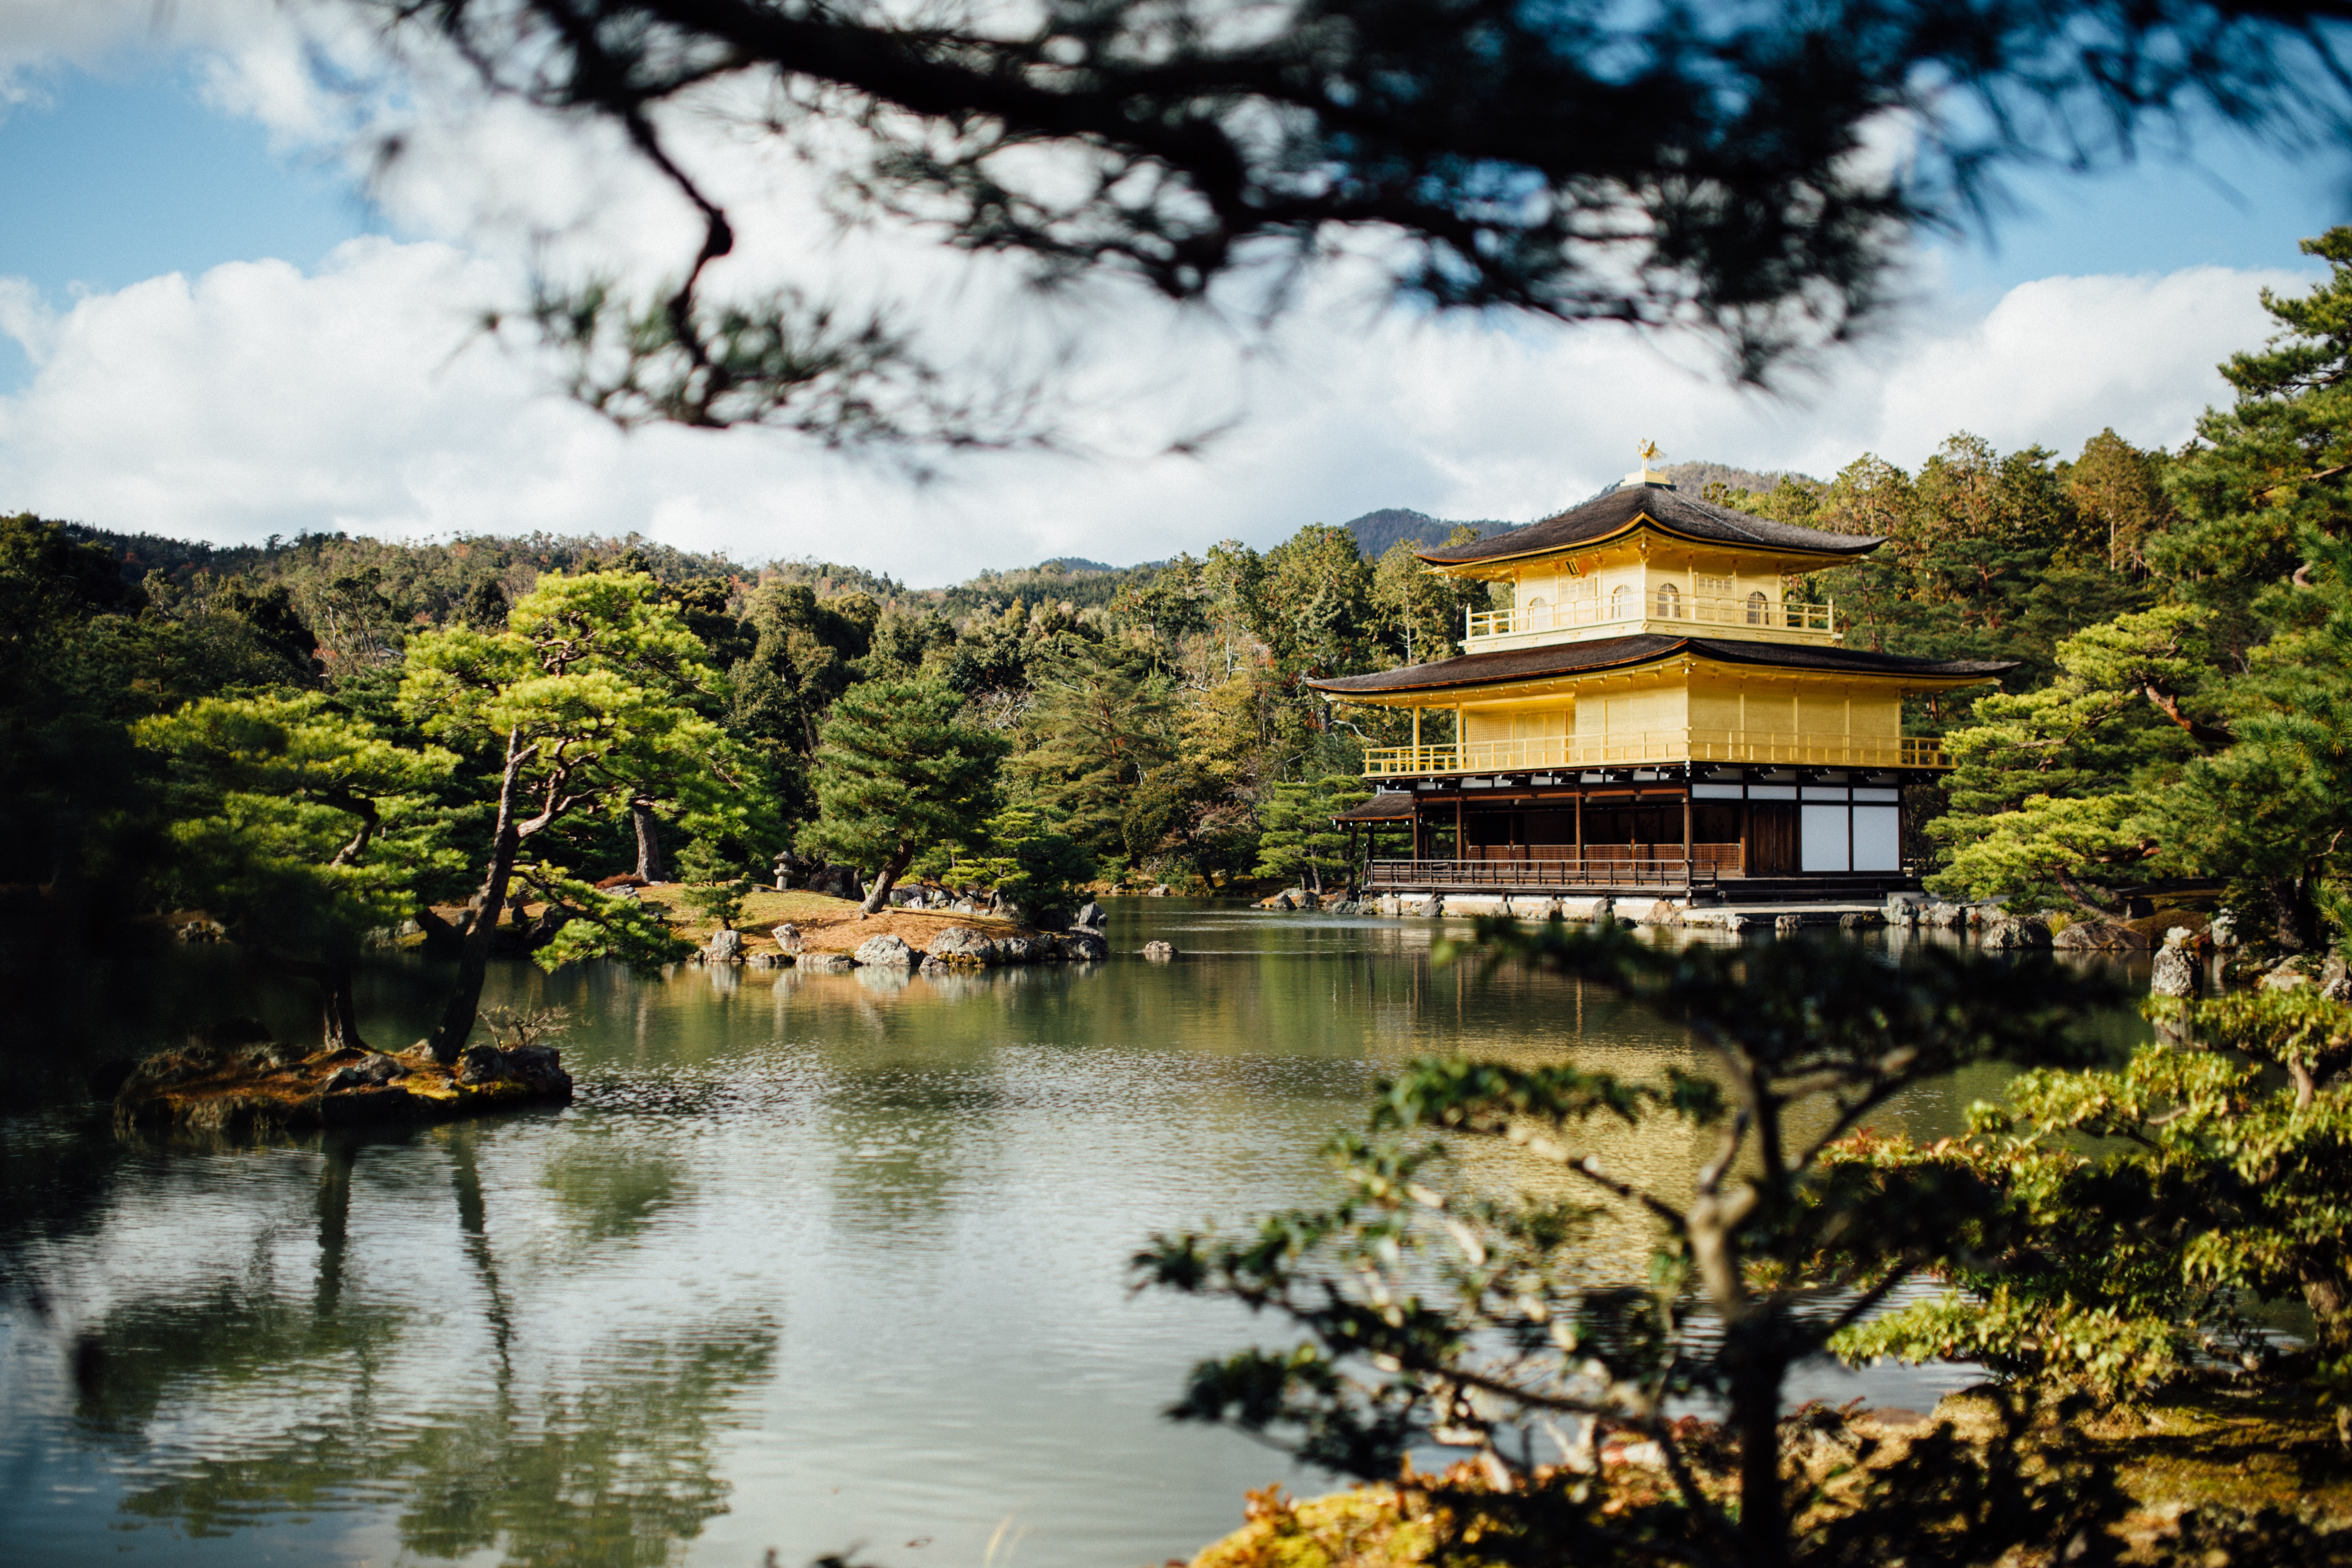 yellow building near body of water and tress